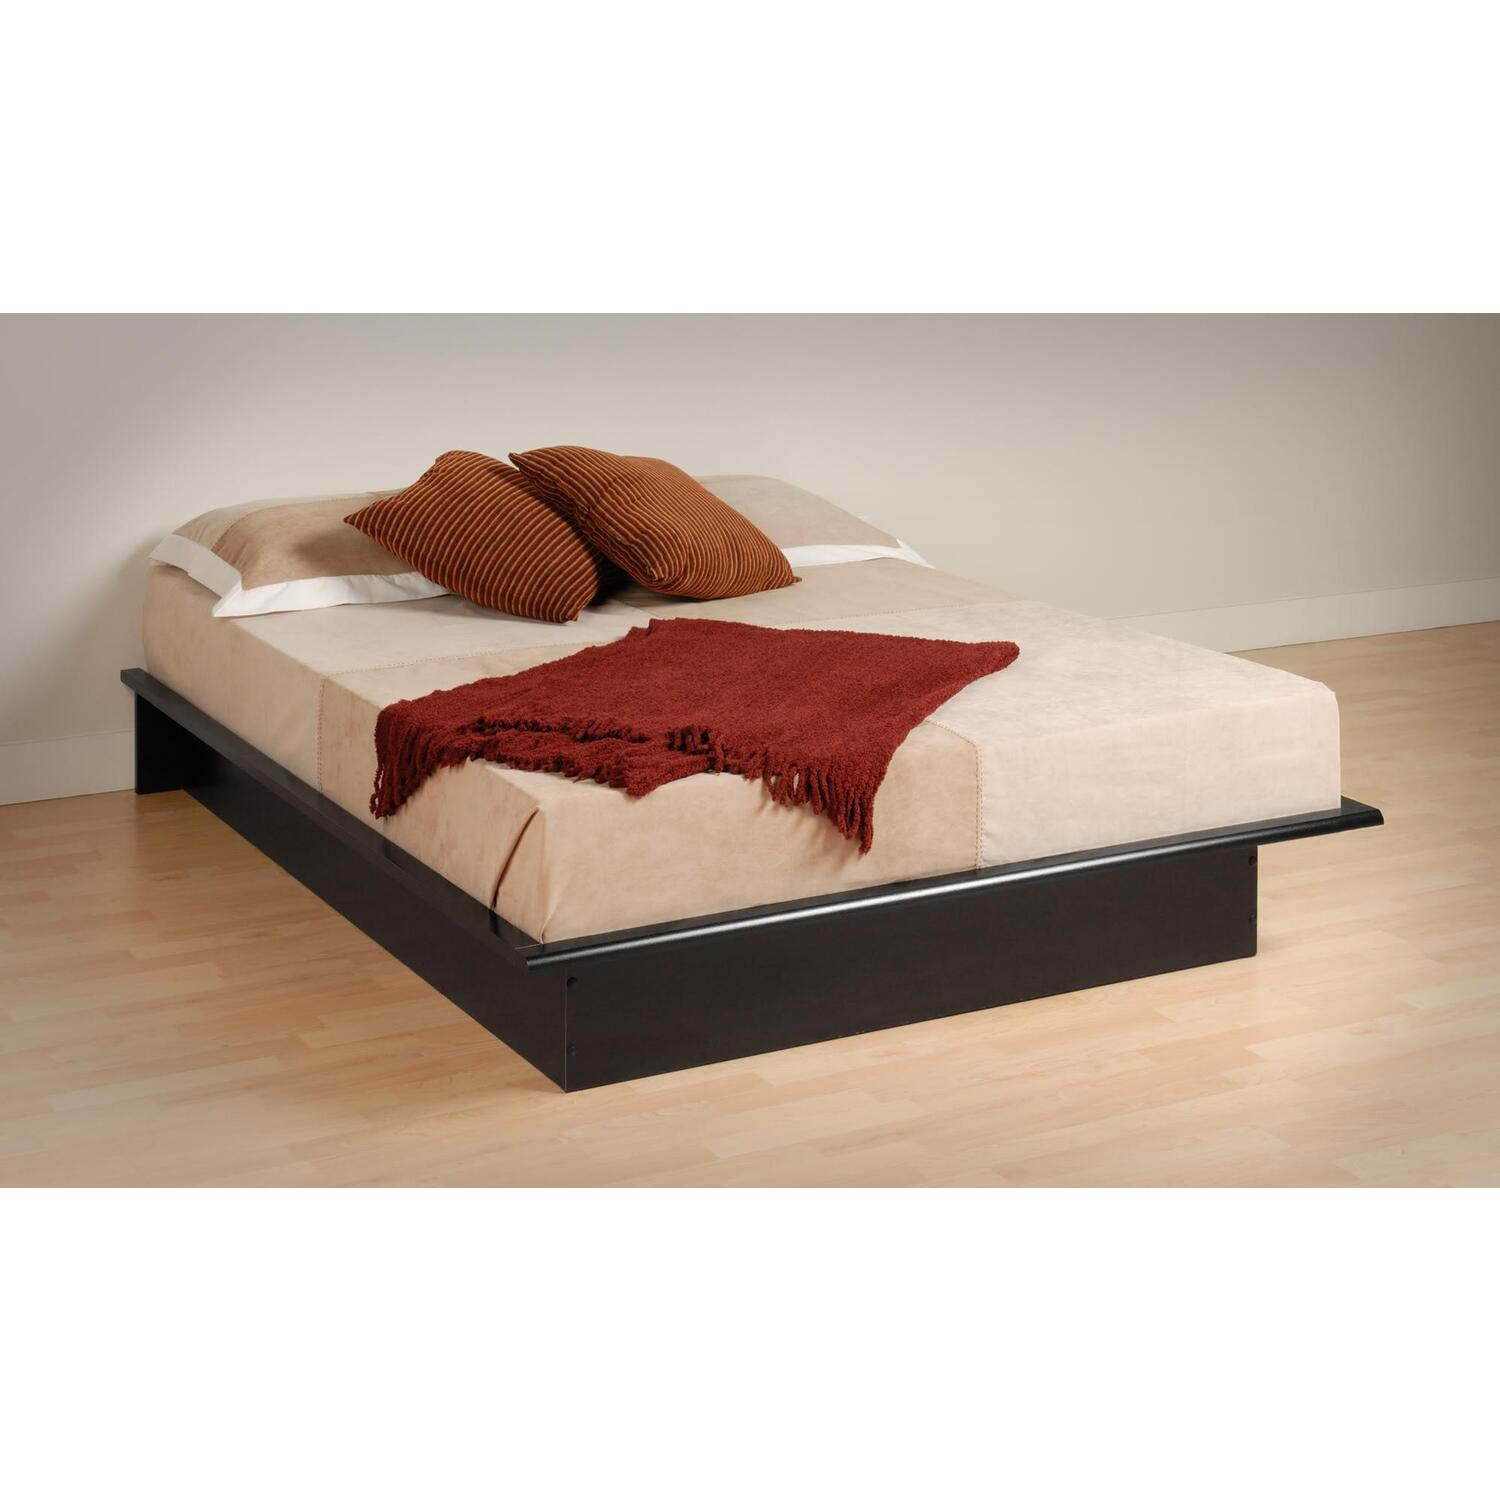 Black Sonoma Double Full Bookcase Platform Bed 402 78